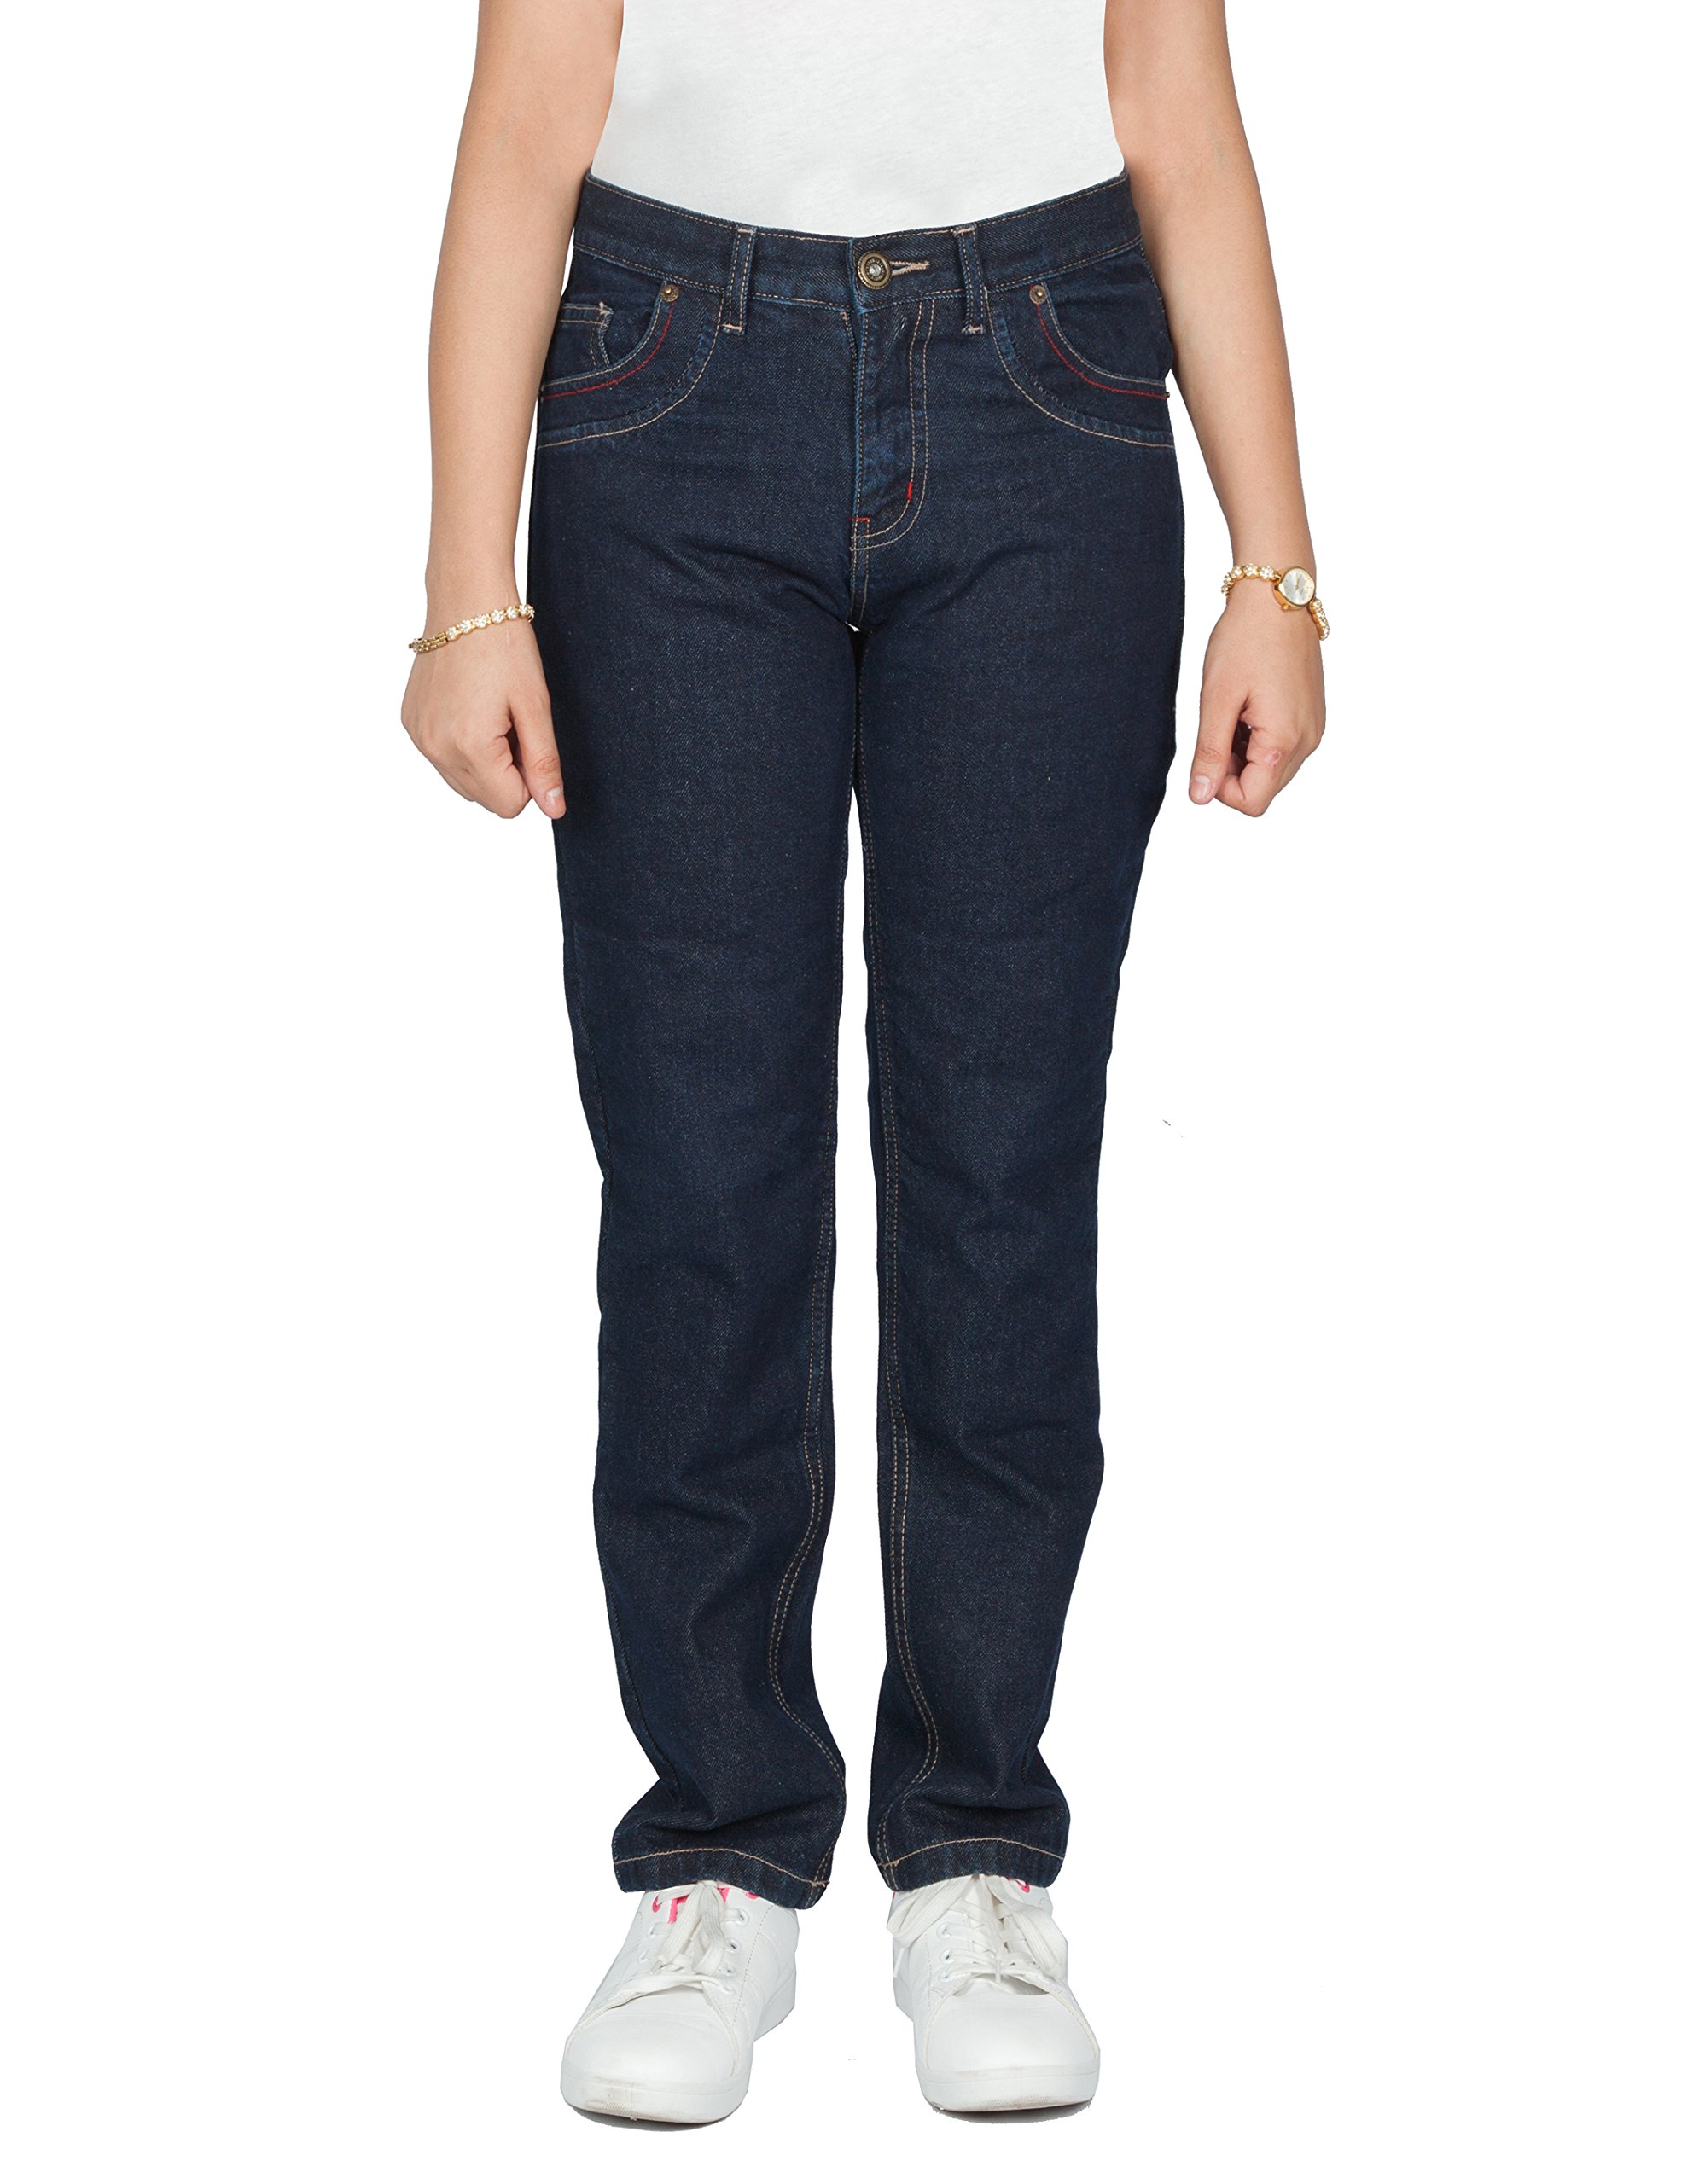 OneDayMore Ladies Aramid Lined Motorcycle Jeans, Free Protectors. 8102, 32W x 29L.